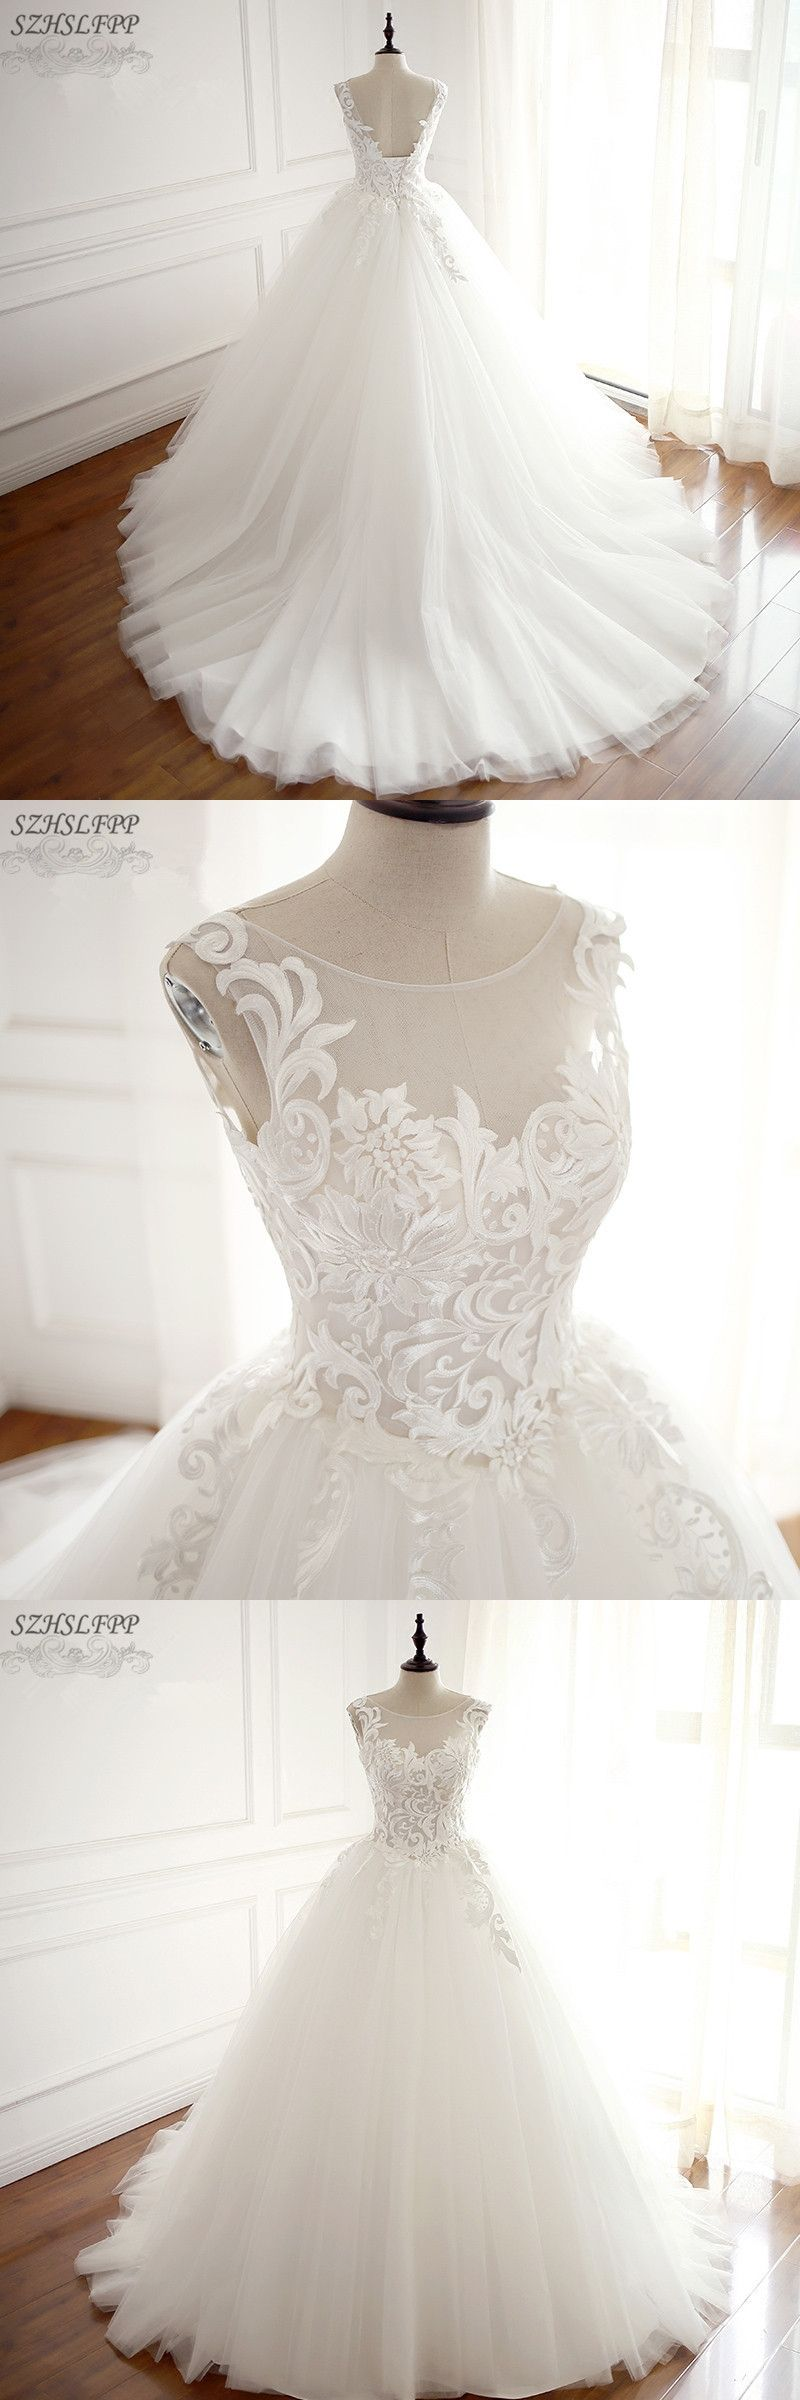 Vintage Korean Lace Up Ball Gown Wedding Dresses Sheer Neck Vintage